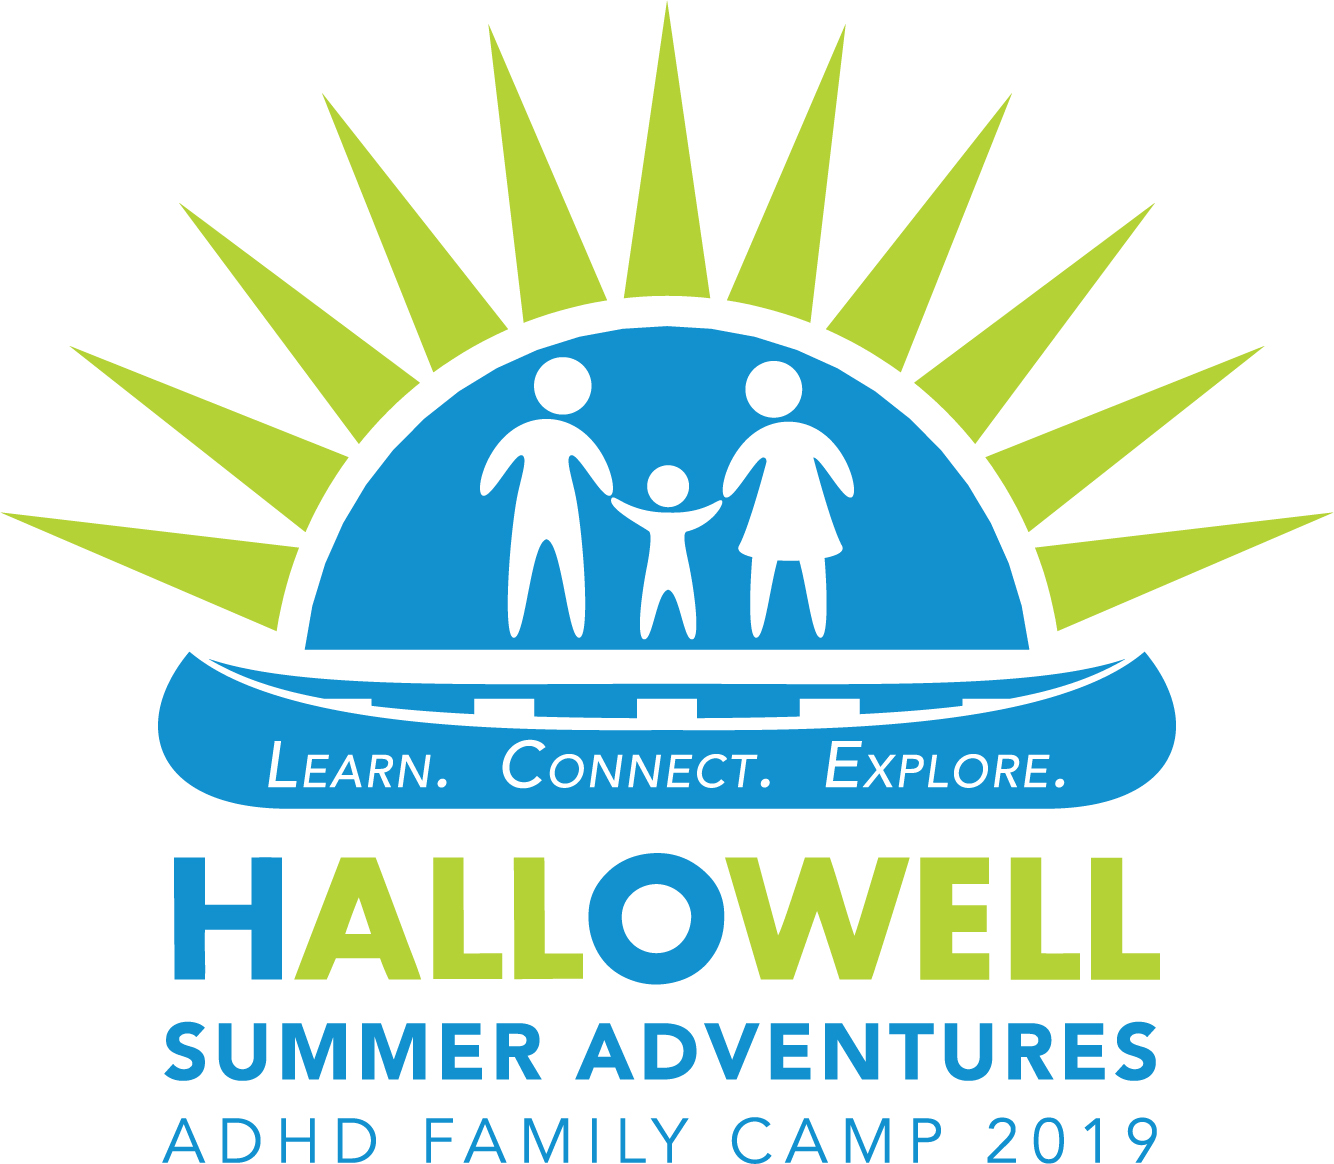 Dr. Hallowell's 2019 ADHD Family Camp